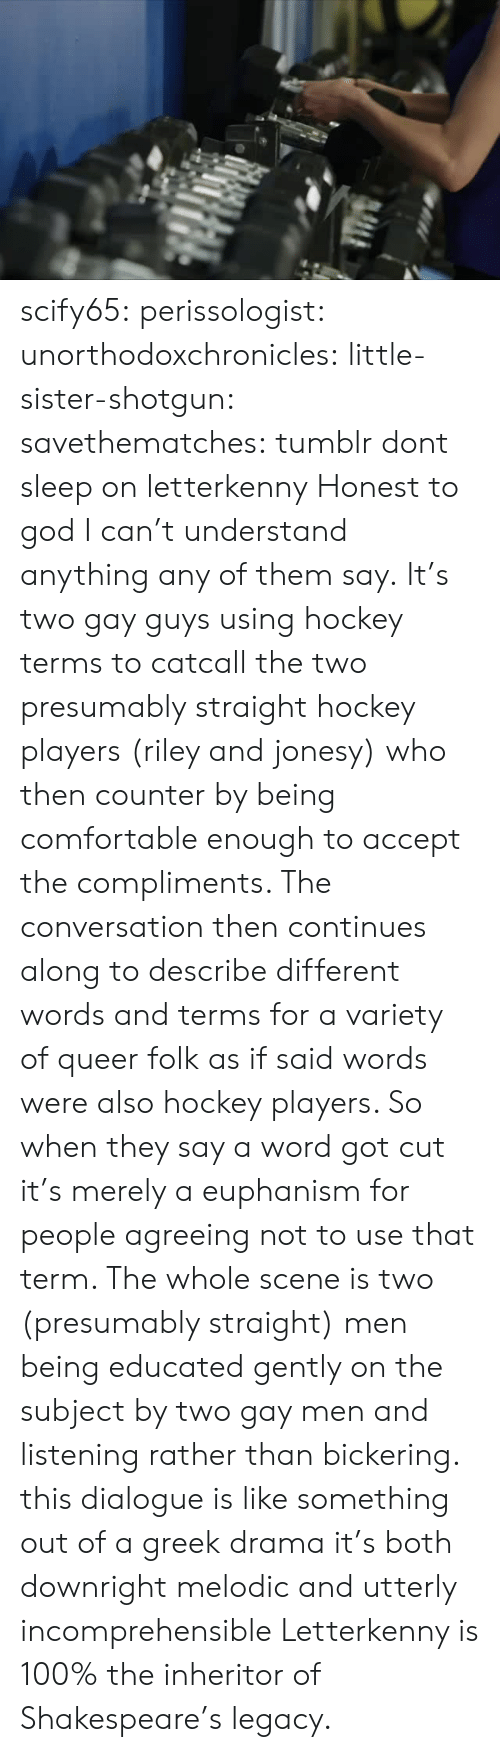 Letterkenny: scify65: perissologist:  unorthodoxchronicles:  little-sister-shotgun:  savethematches: tumblr dont sleep on letterkenny  Honest to god I can't understand anything any of them say.  It's two gay guys using hockey terms to catcall the two presumably straight hockey players (riley and jonesy) who then counter by being comfortable enough to accept the compliments. The conversation then continues along to describe different words and terms for a variety of queer folk as if said words were also hockey players. So when they say a word got cut it's merely a euphanism for people agreeing not to use that term. The whole scene is two (presumably straight) men being educated gently on the subject by two gay men and listening rather than bickering.   this dialogue is like something out of a greek drama it's both downright melodic and utterly incomprehensible   Letterkenny is 100% the inheritor of Shakespeare's legacy.